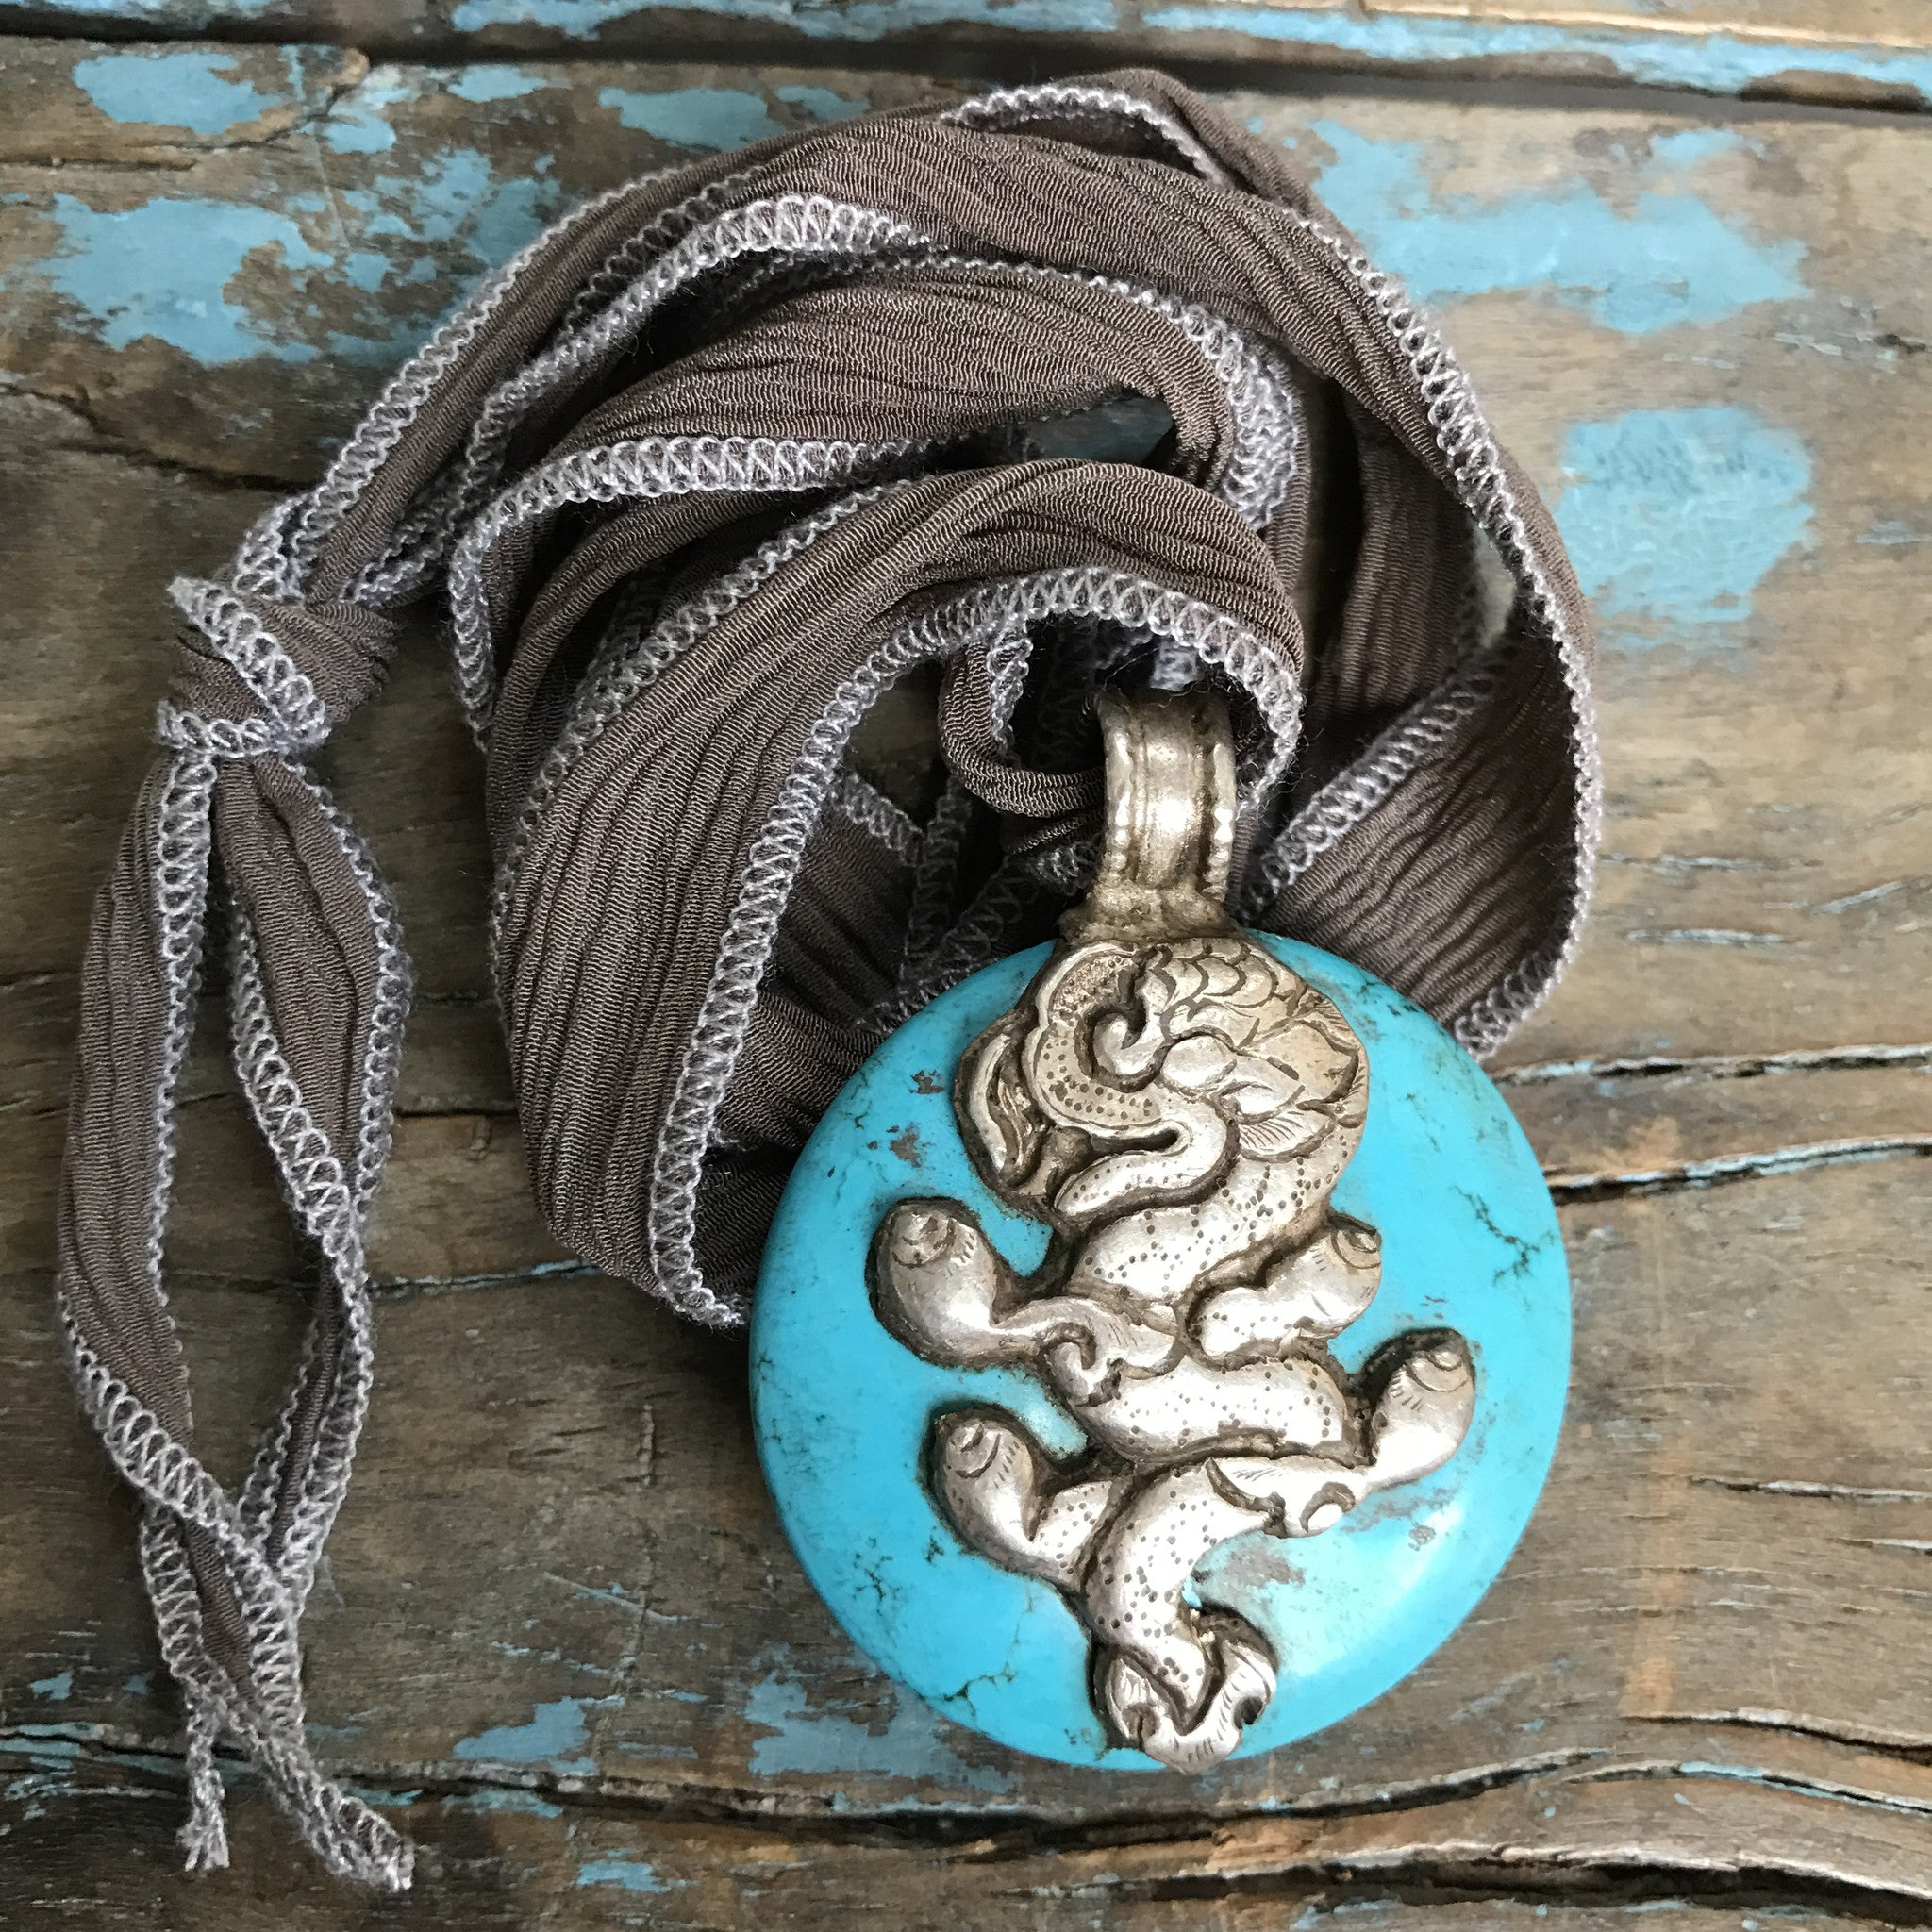 Turquoise Medallion with Dragon and Monkey on Taupe Ribbon by Sage Machado - The Sage Lifestyle